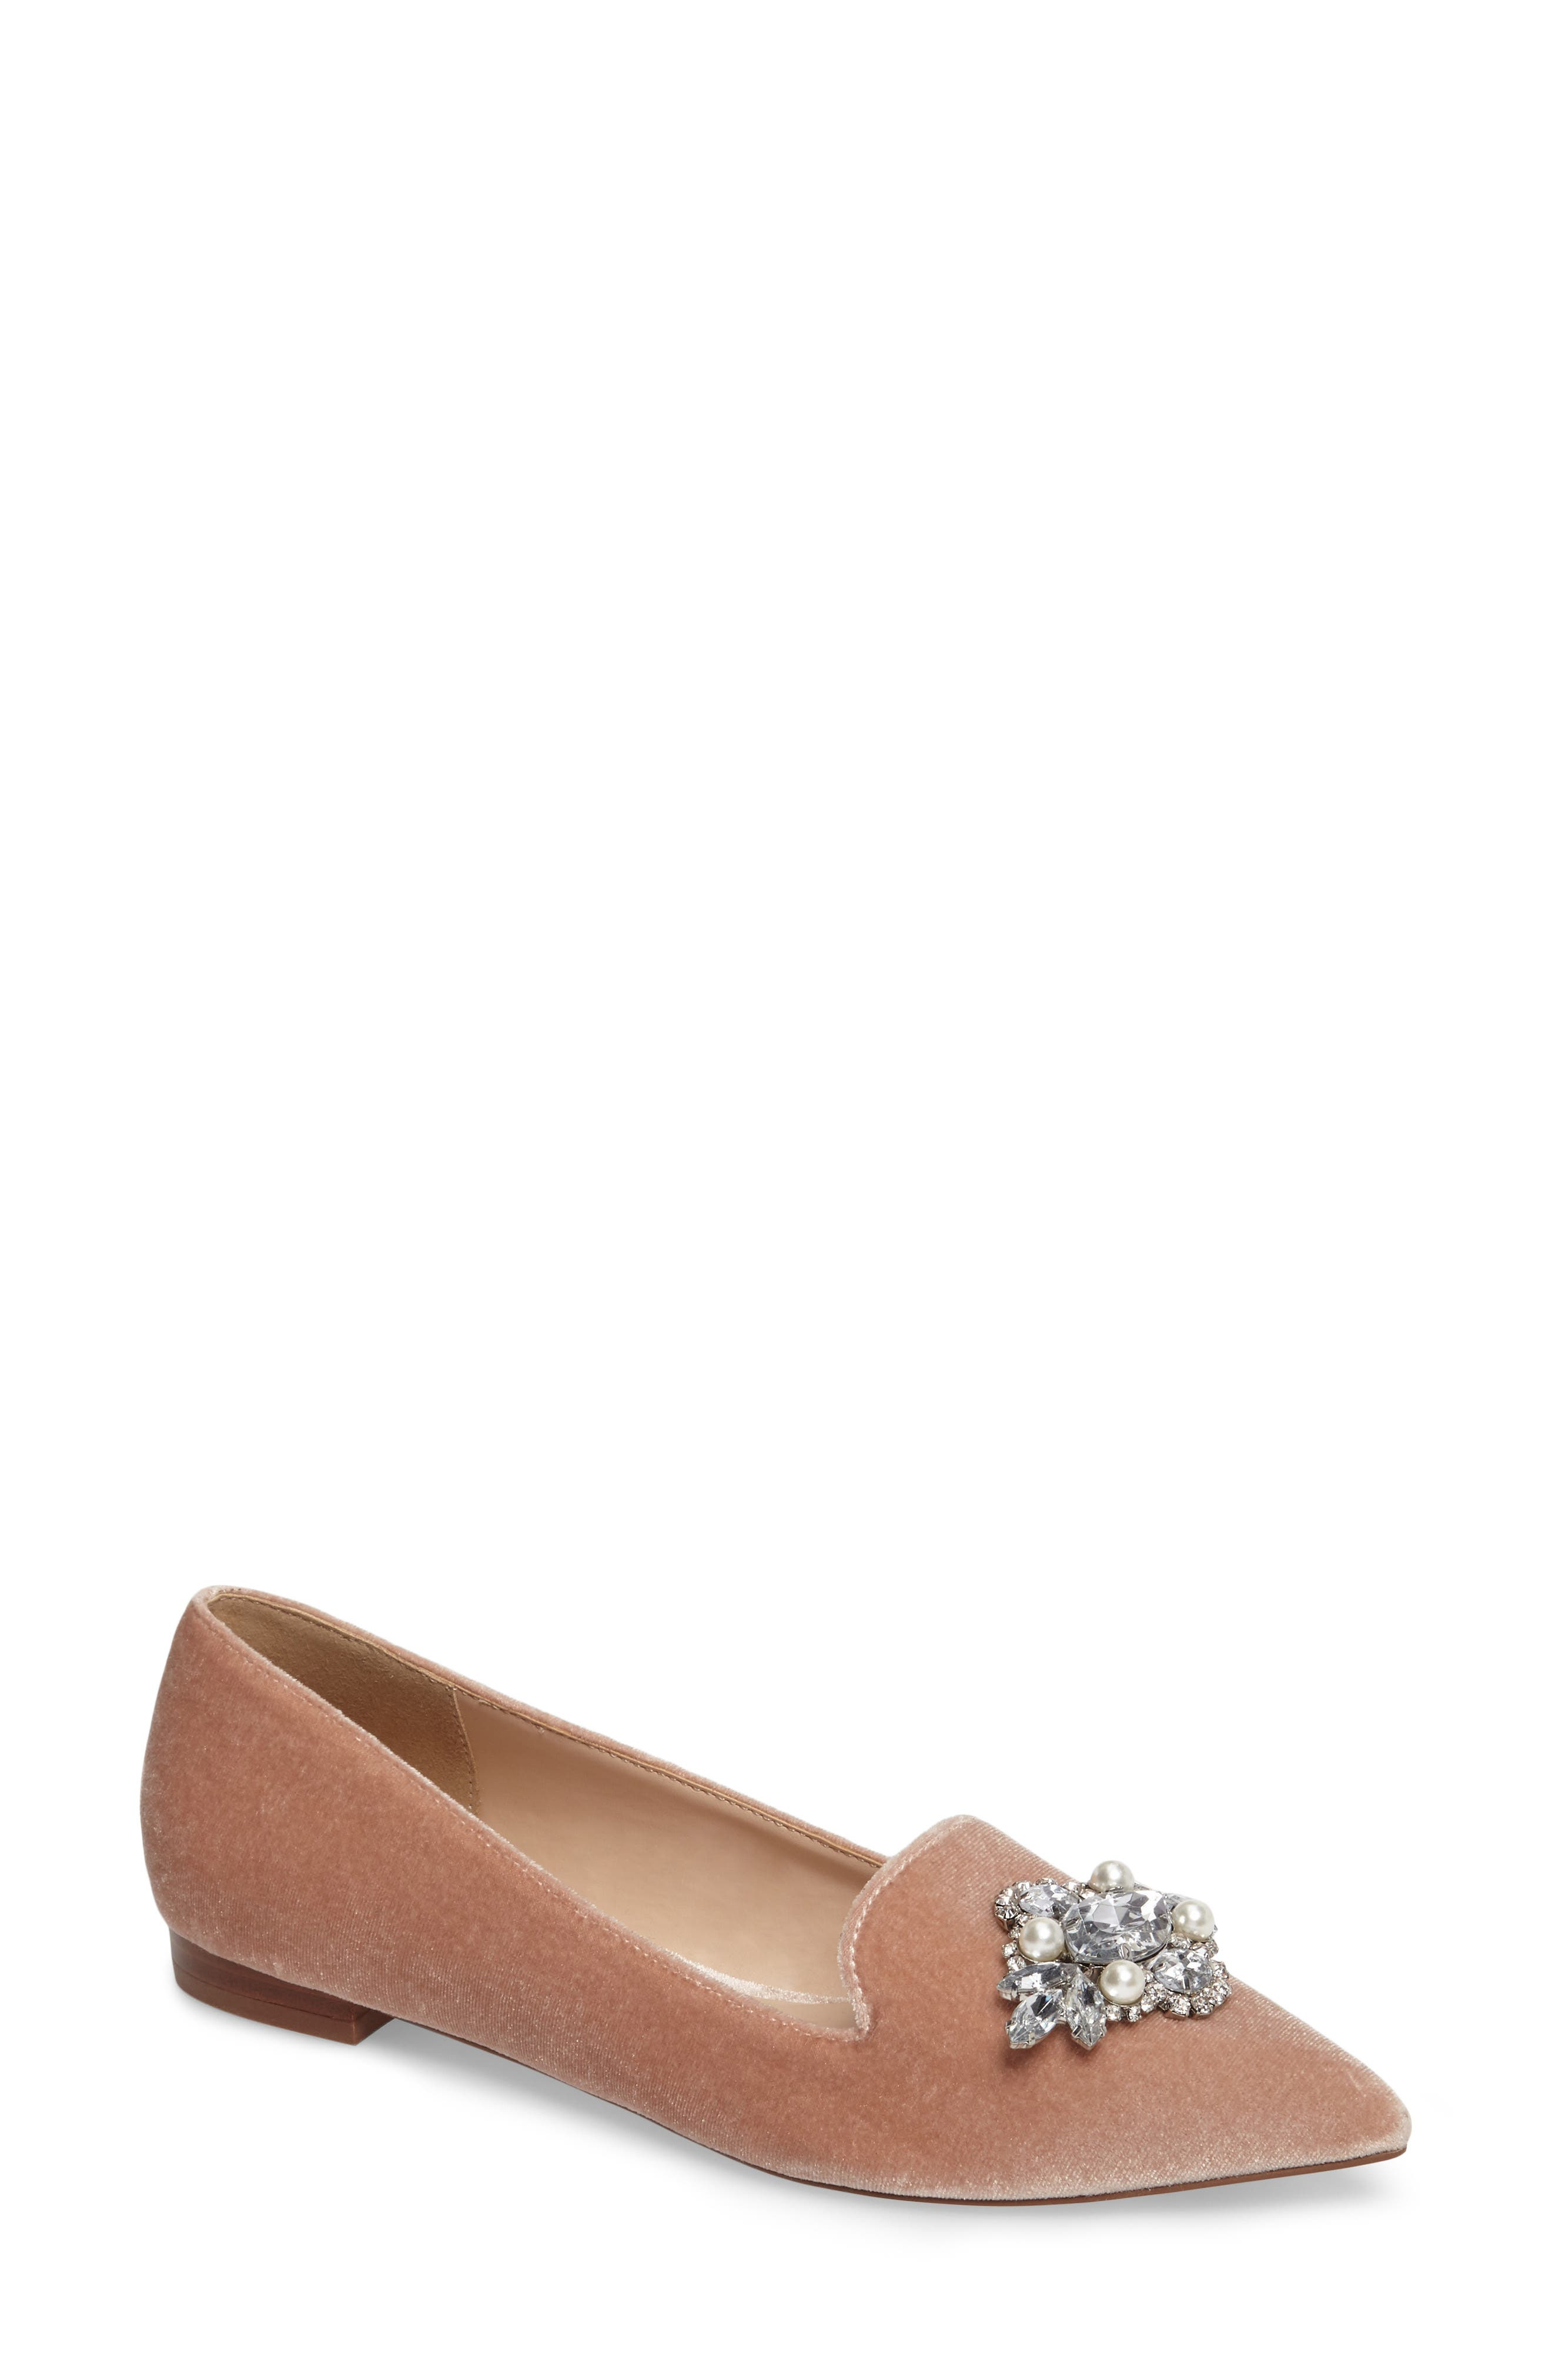 Alternate Image 1 Selected - Sole Society Libry Crystal Embellished Flat (Women)